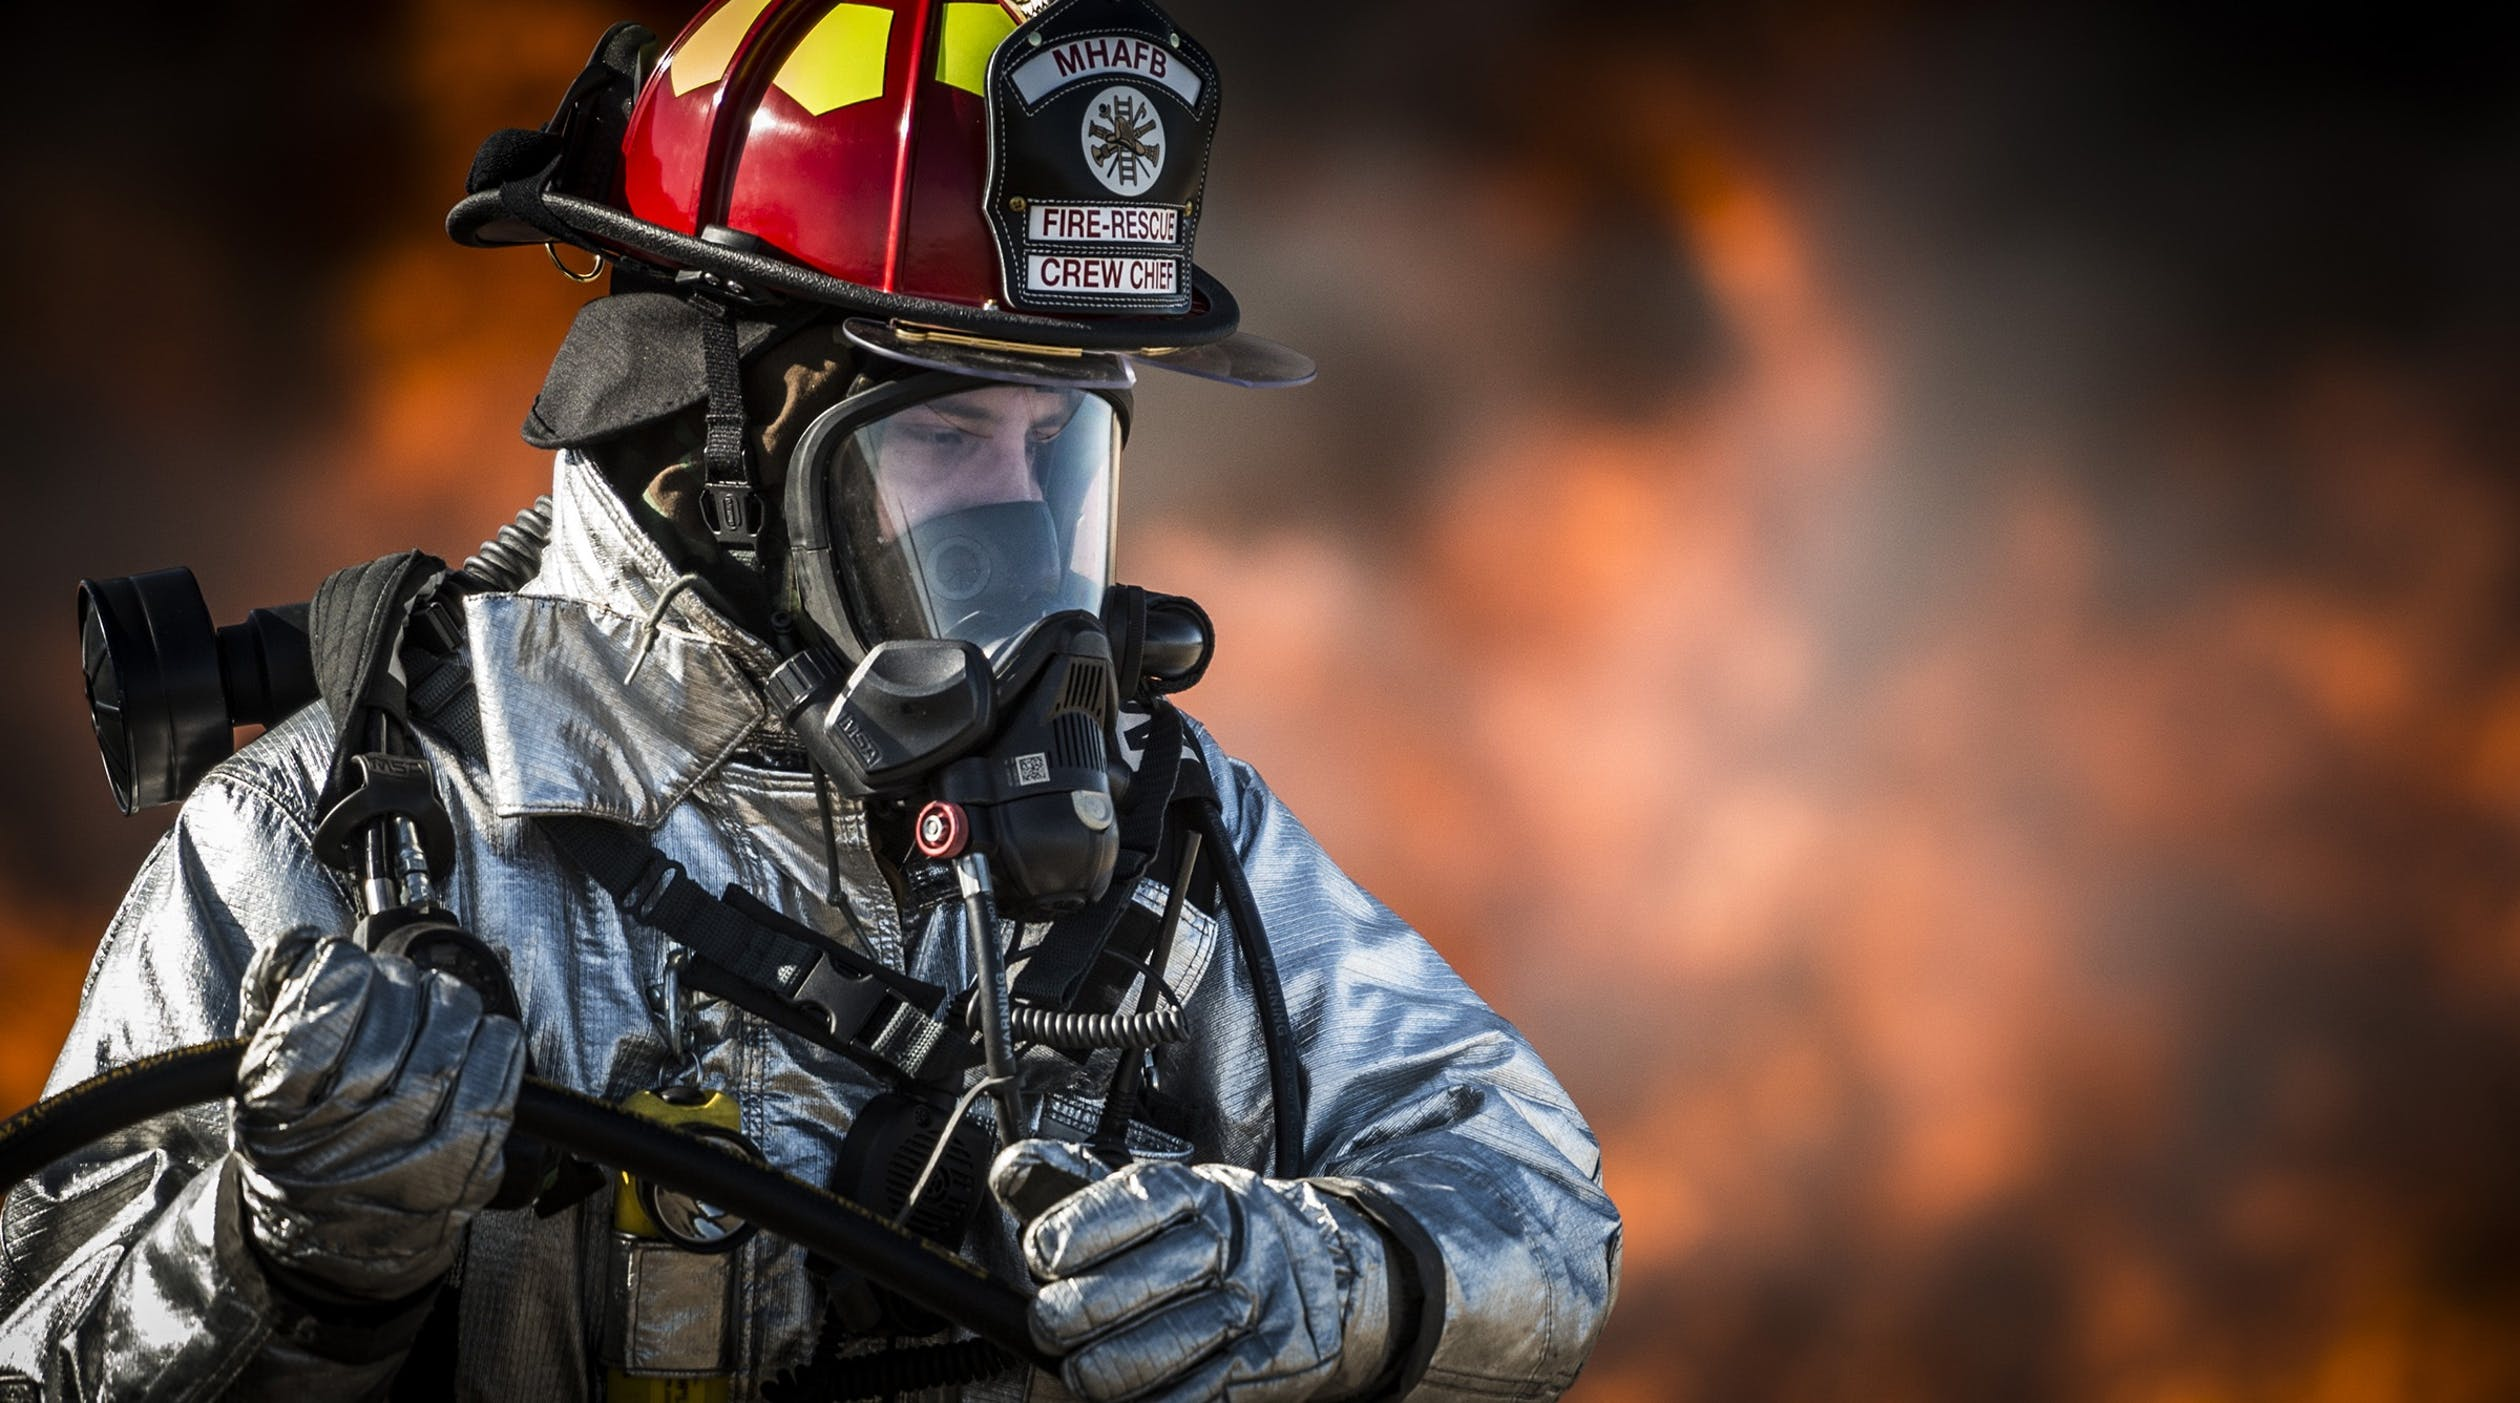 firefighter-fire-portrait-training.jpg